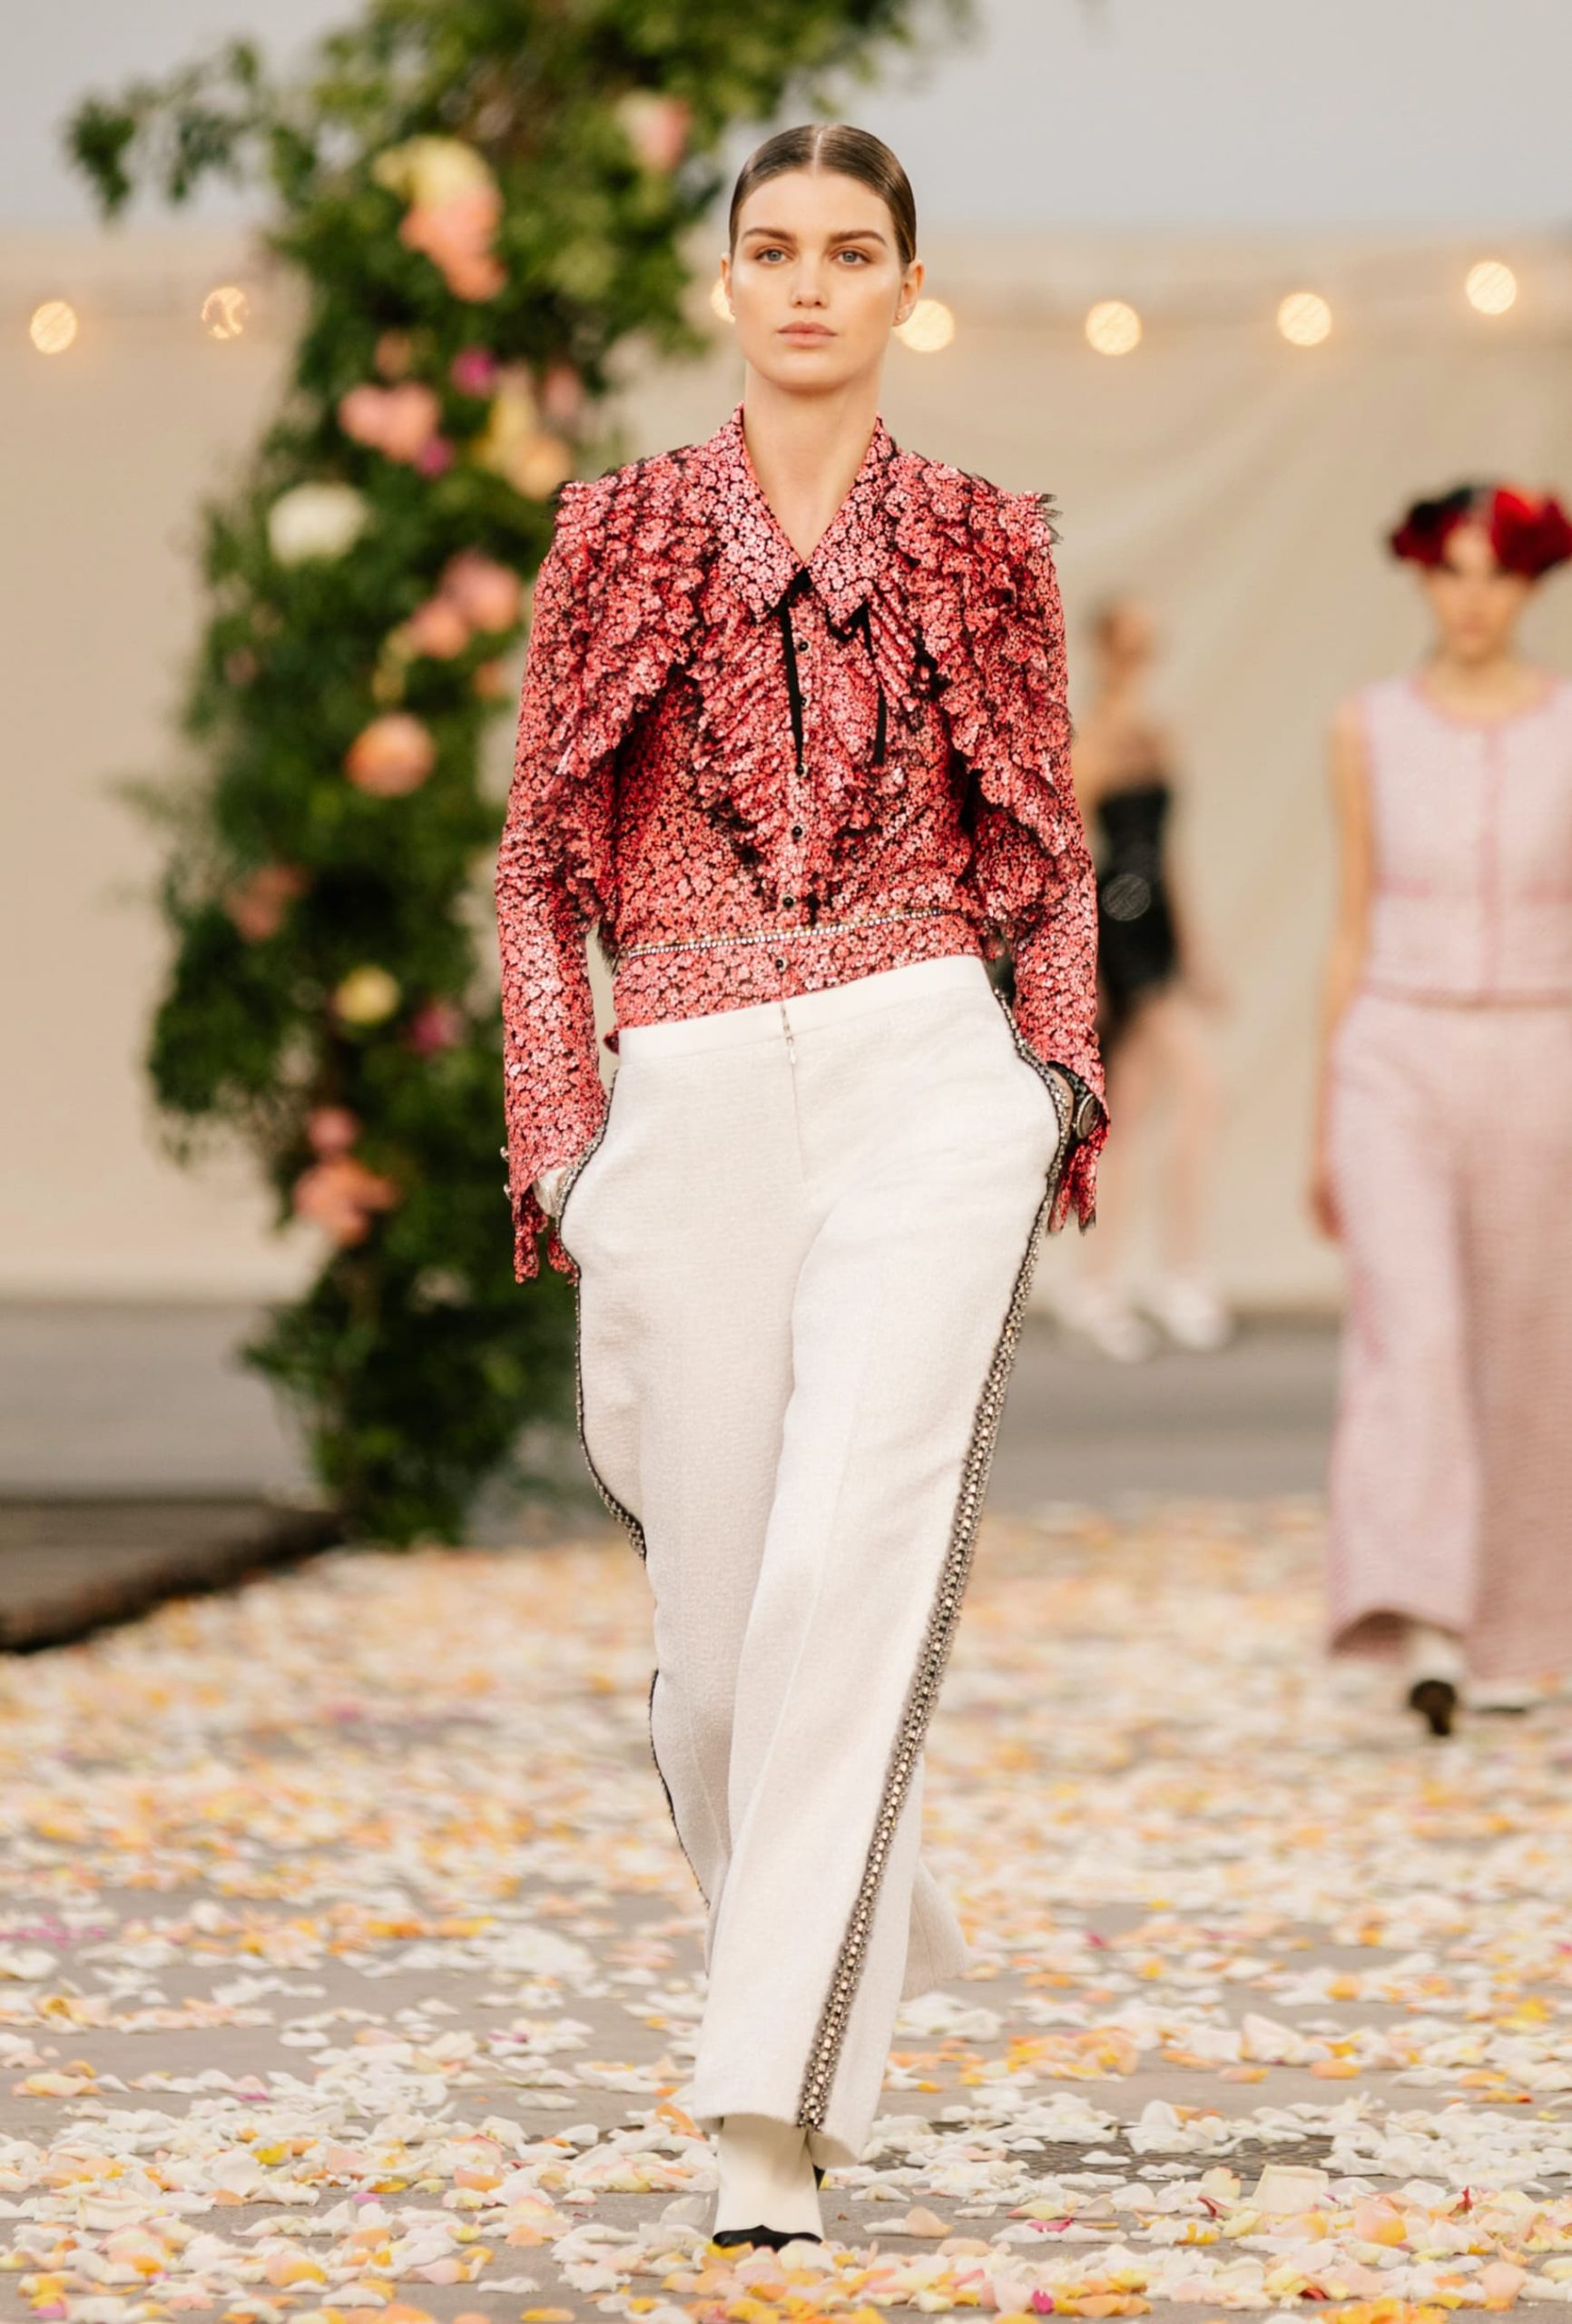 Chanel Spring 2021 Haute Couture Fashion Show Review